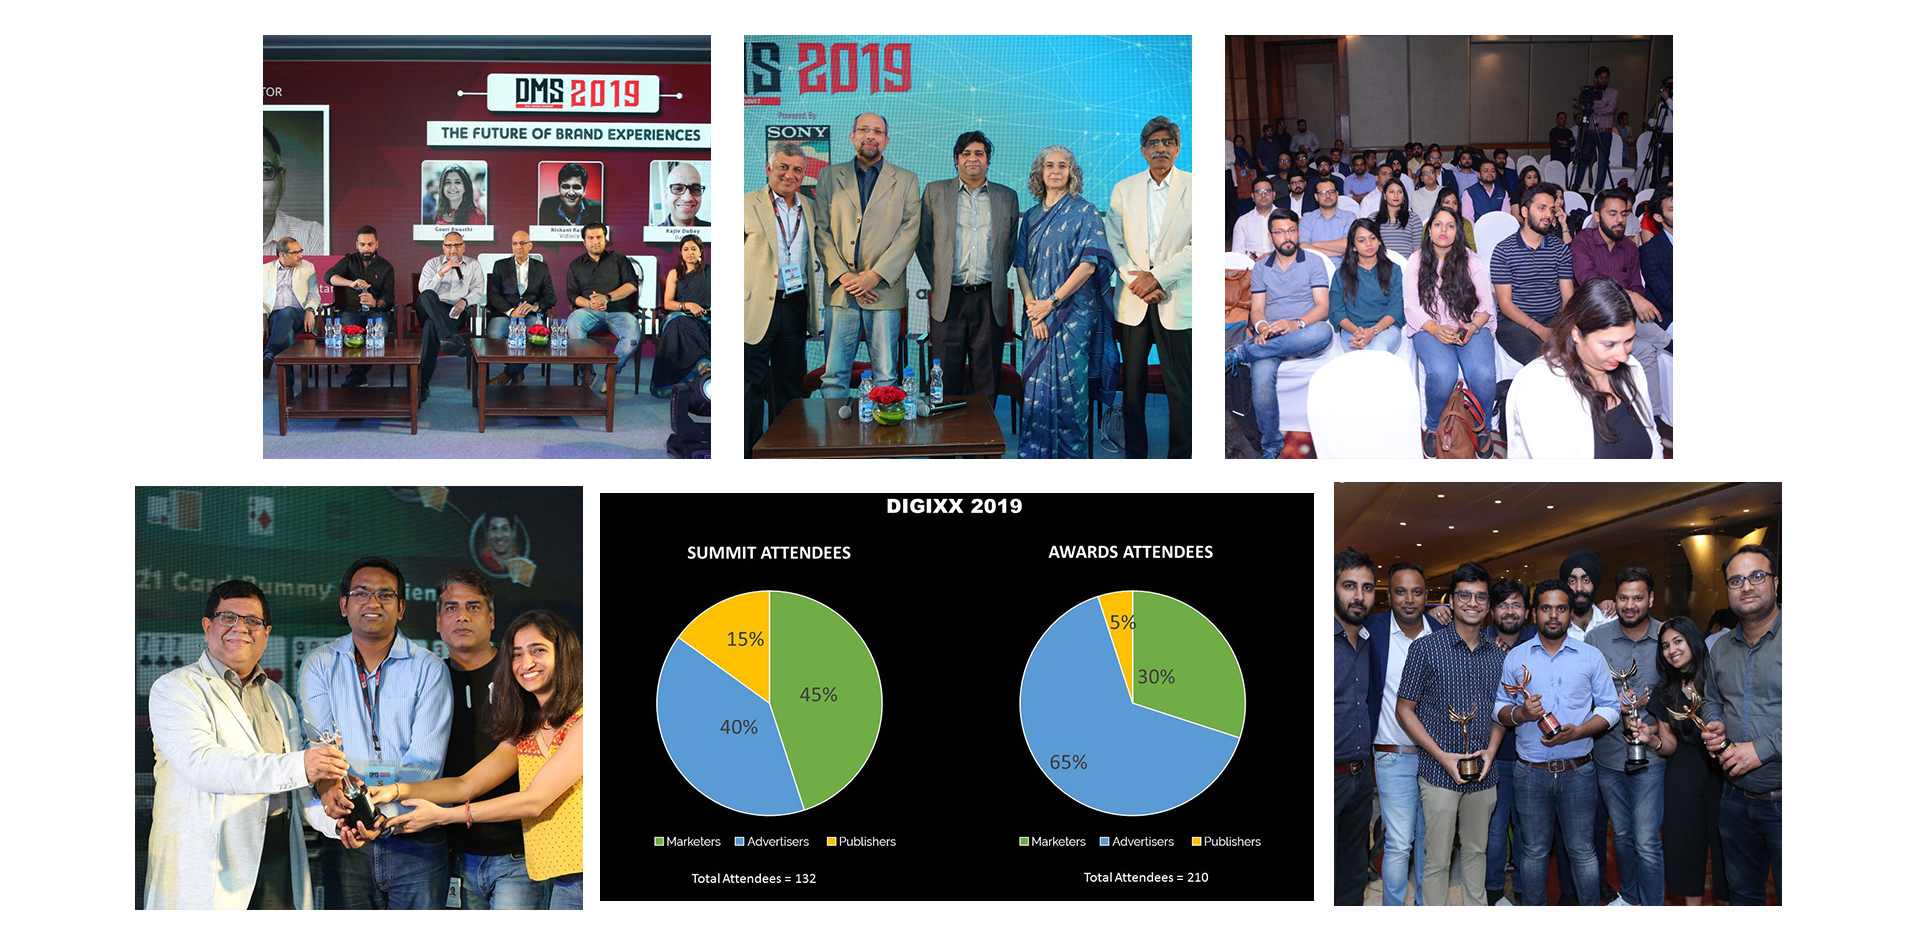 DIGIXX AWARDS 2019 - Real Awards for Real Achiever's